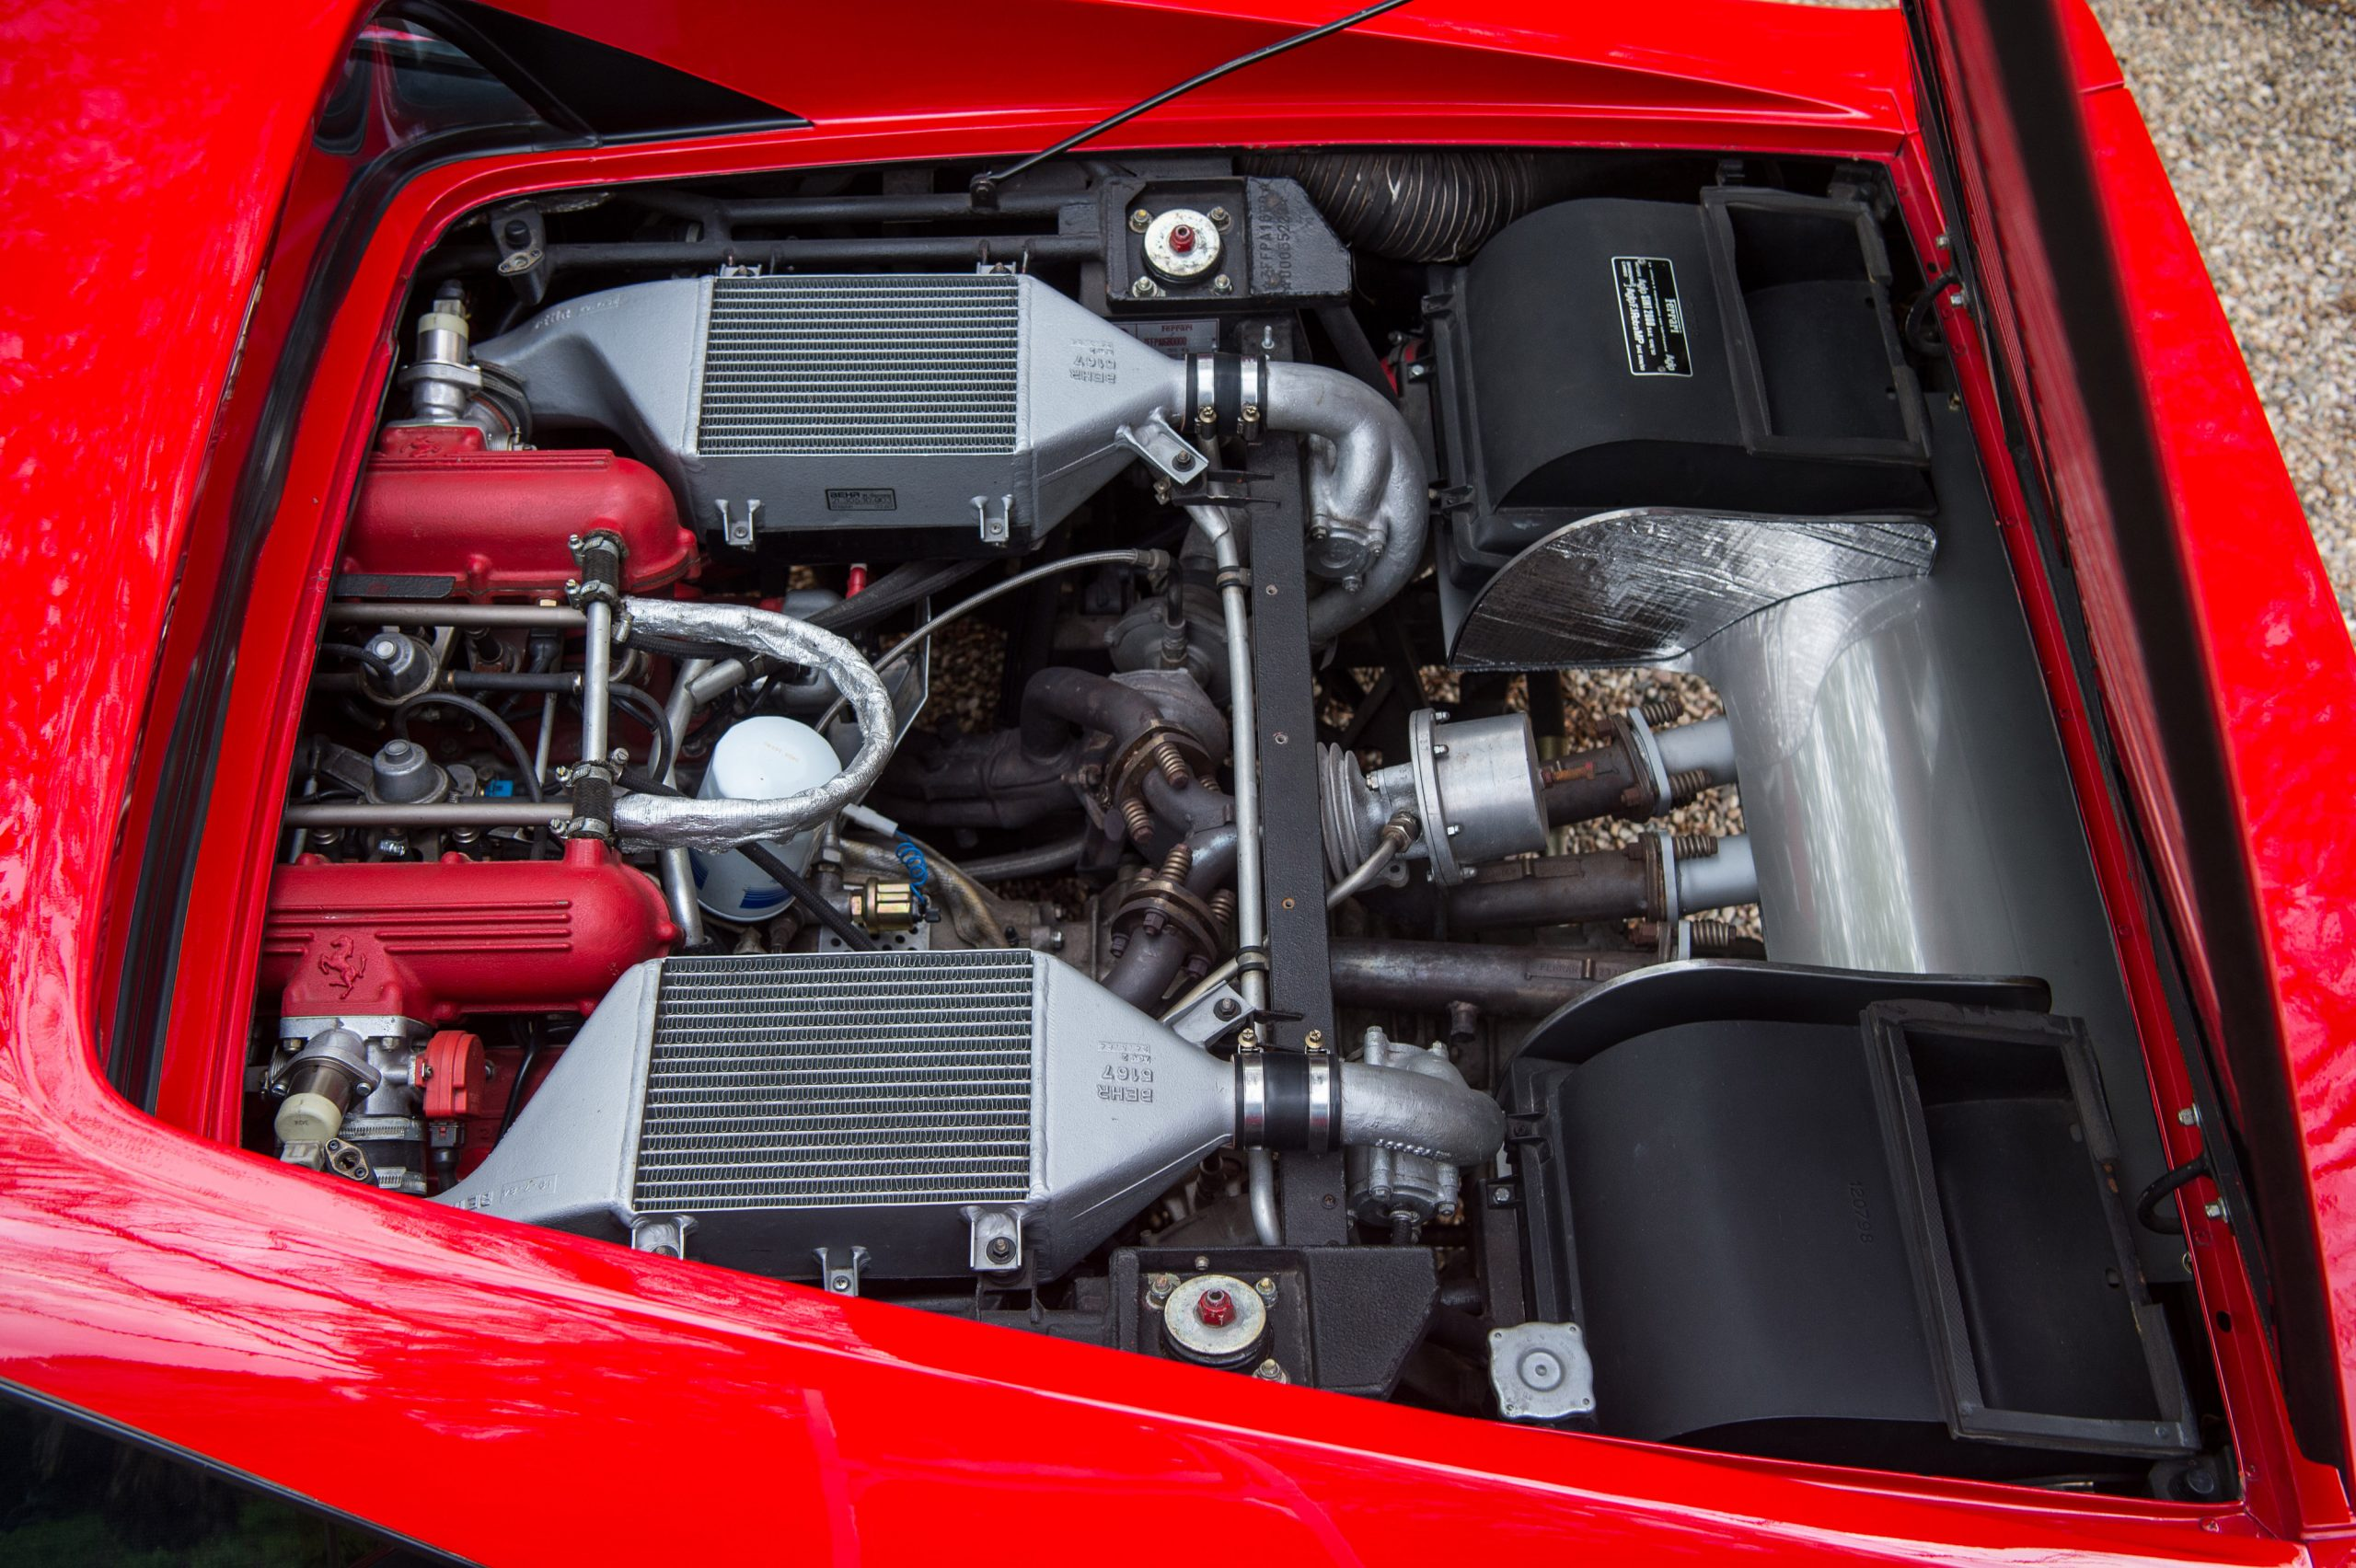 1985 Ferrari 288 GTO Engine